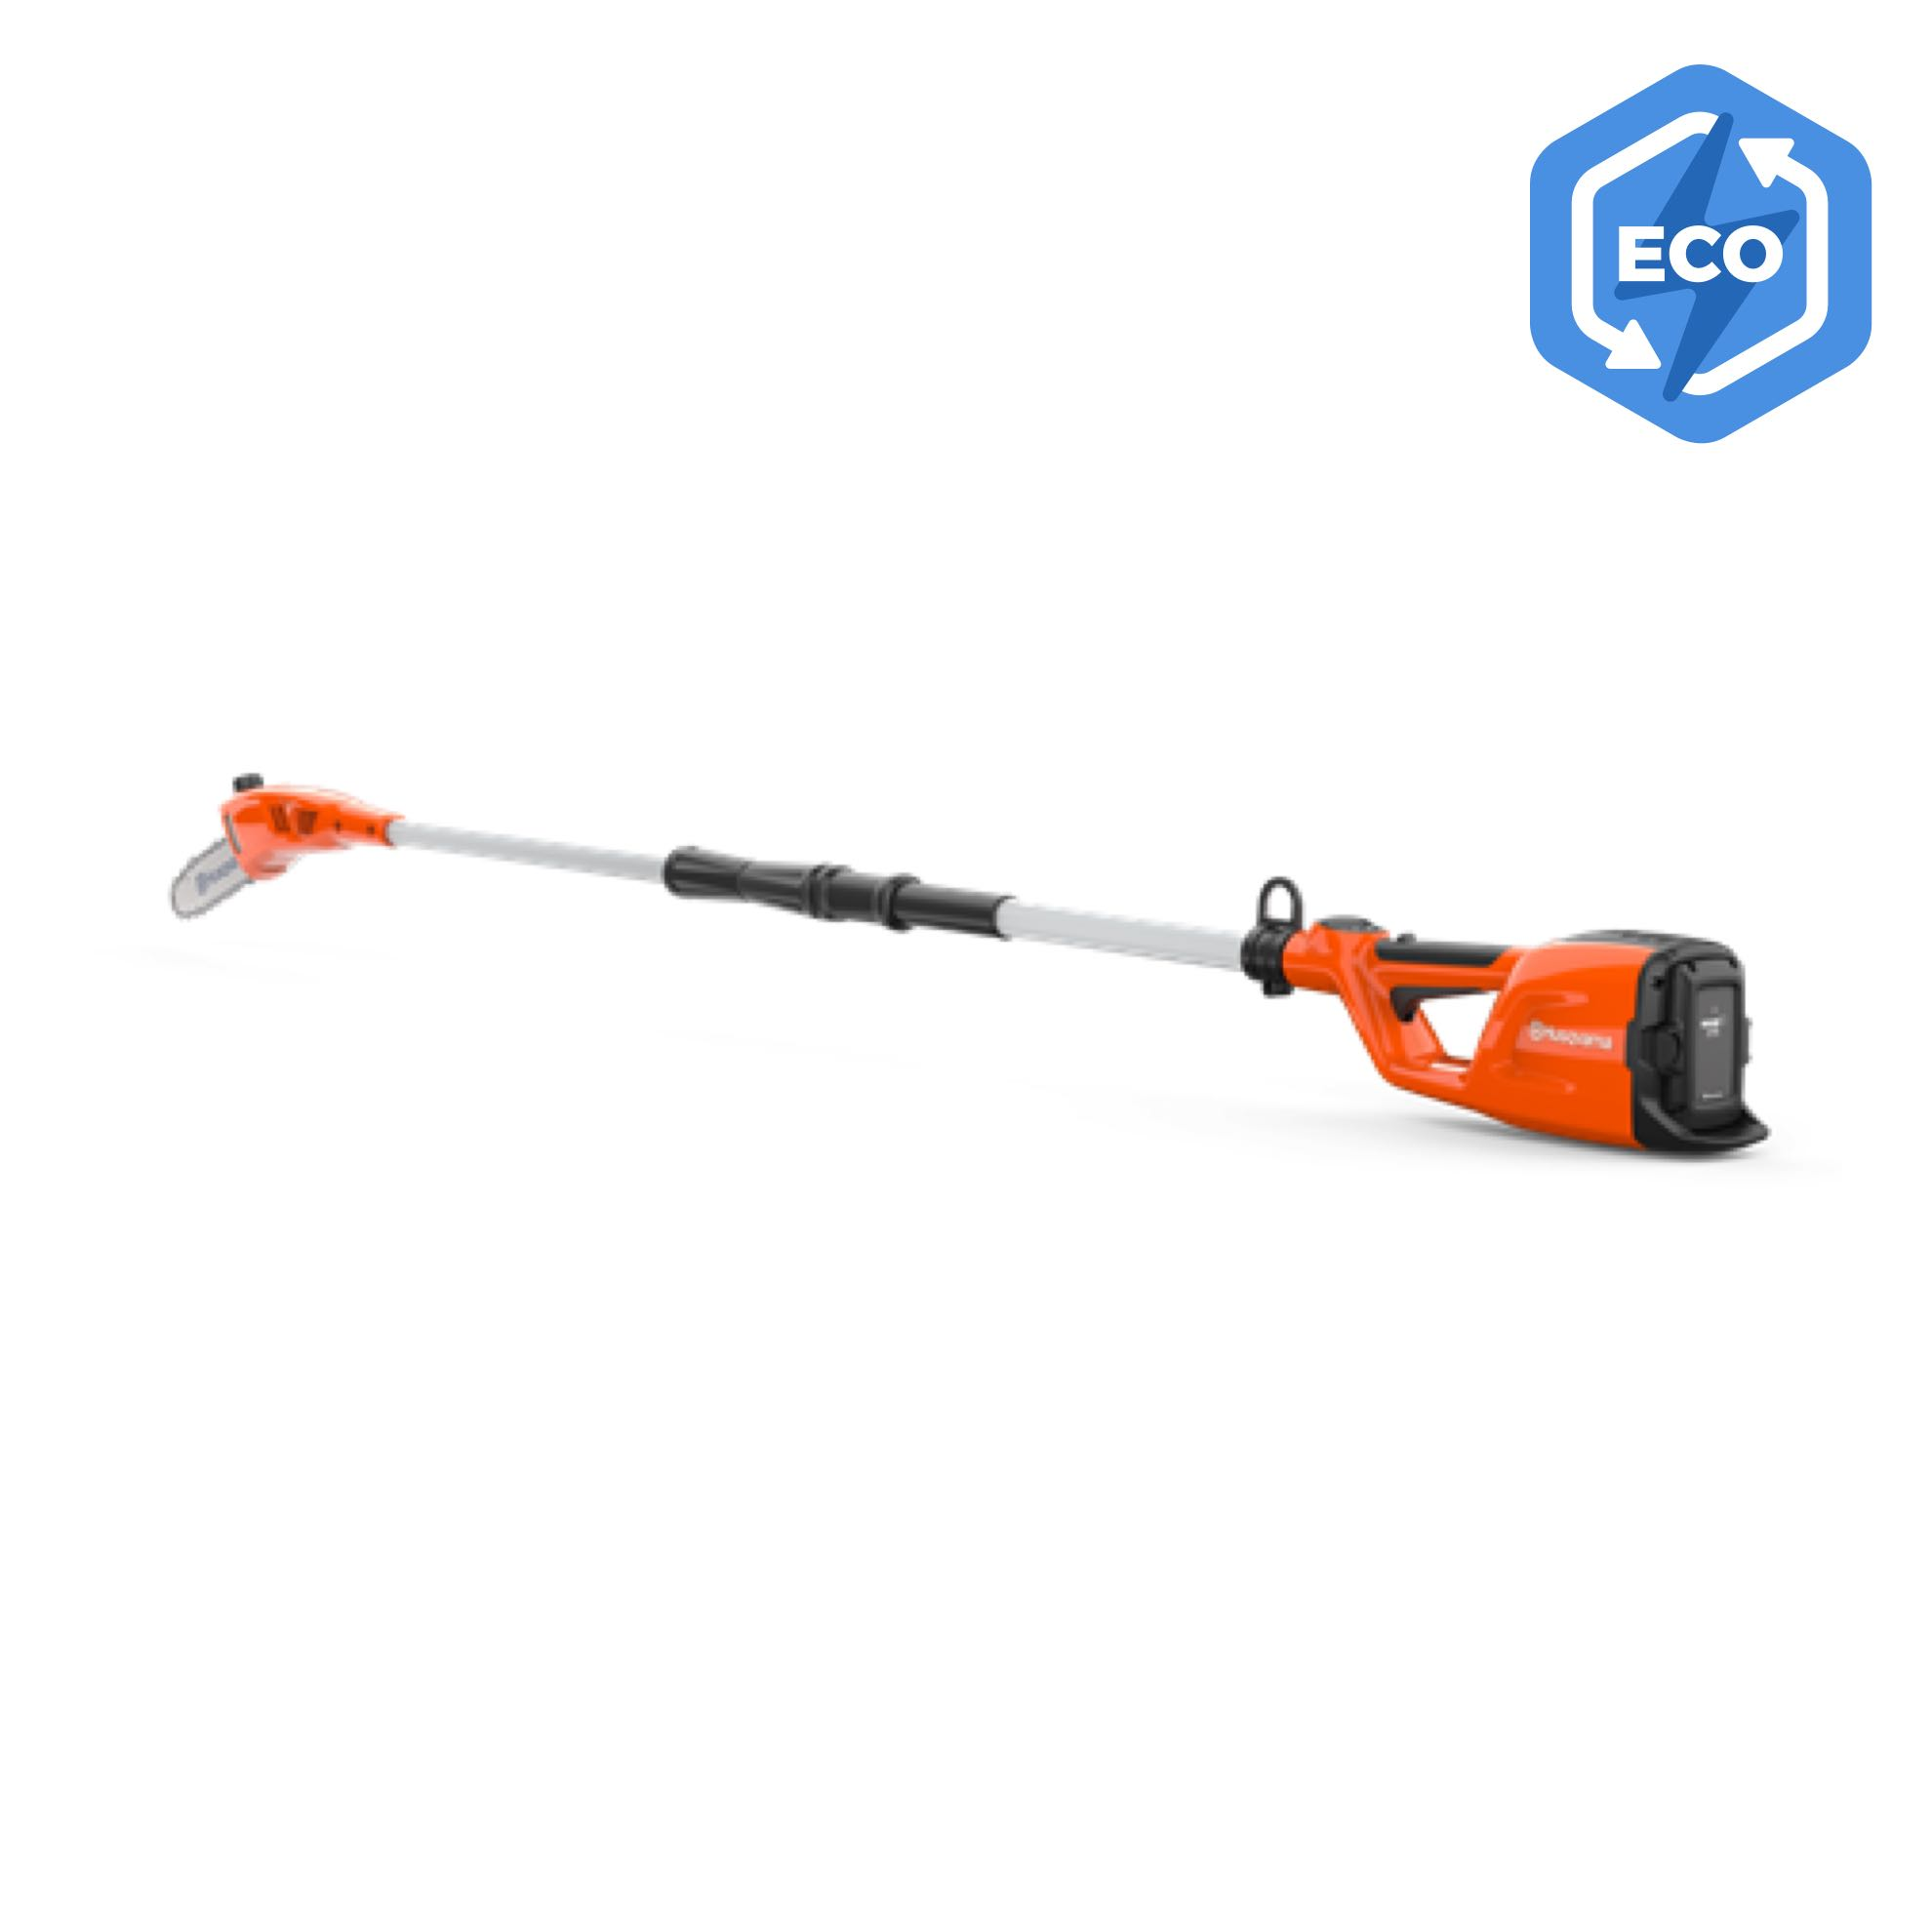 Husqvarna 115iPT4 Pole Saw